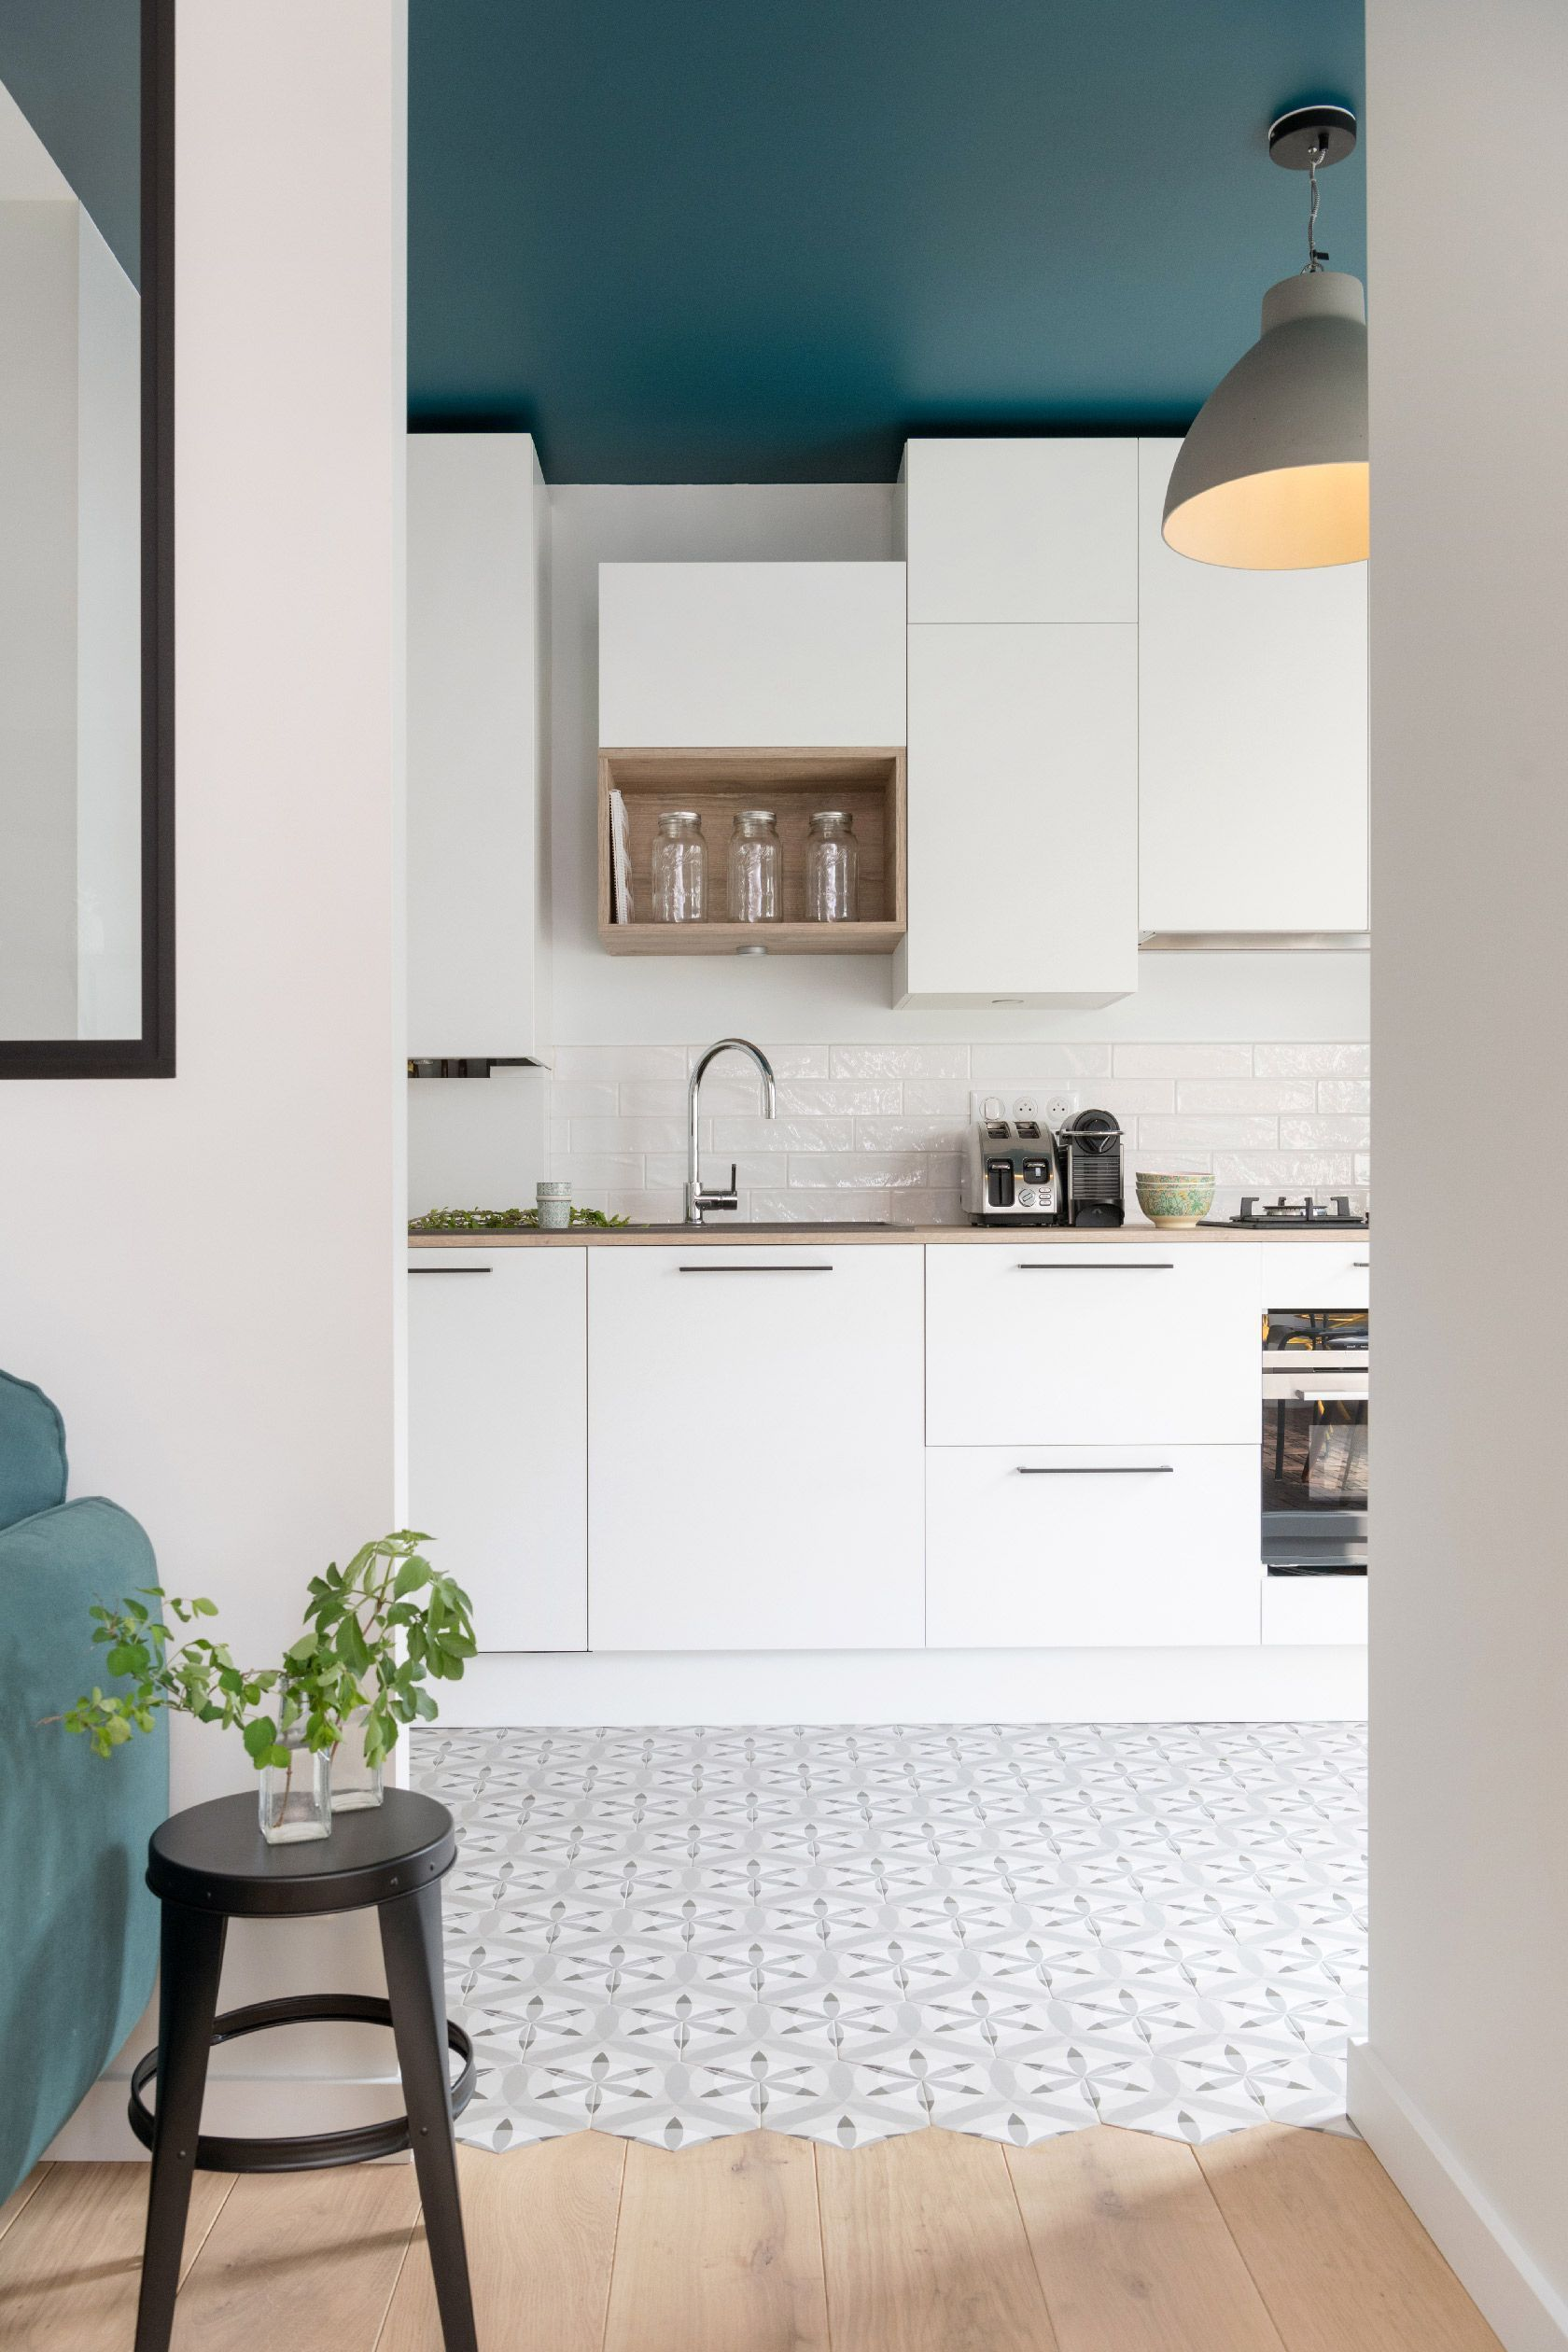 Cuisine Blanche Et Bois Cuisine Blanche Et Bois Campagne Cuisine Blanche Et Bois Credence Cuisine Blan In 2020 Design Your Kitchen Design Home App Design Your Home